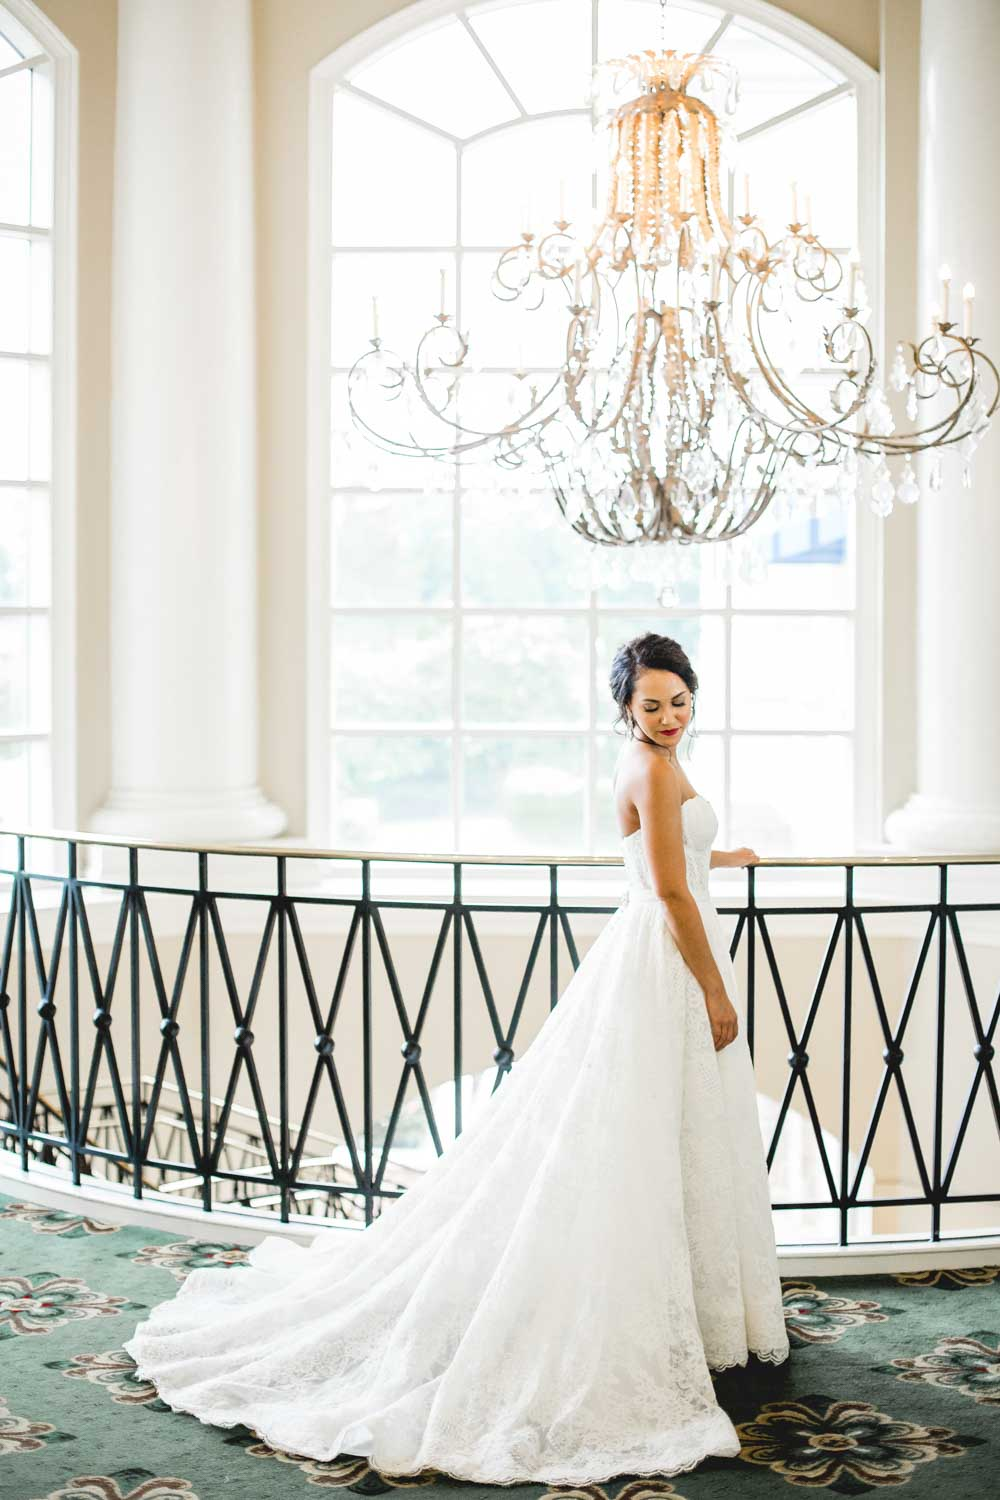 Bridal photo taken at the Ballantyne Hotel & Lodge wedding venue in Charlotte, NC. Photo taken by Daniel K. Photography